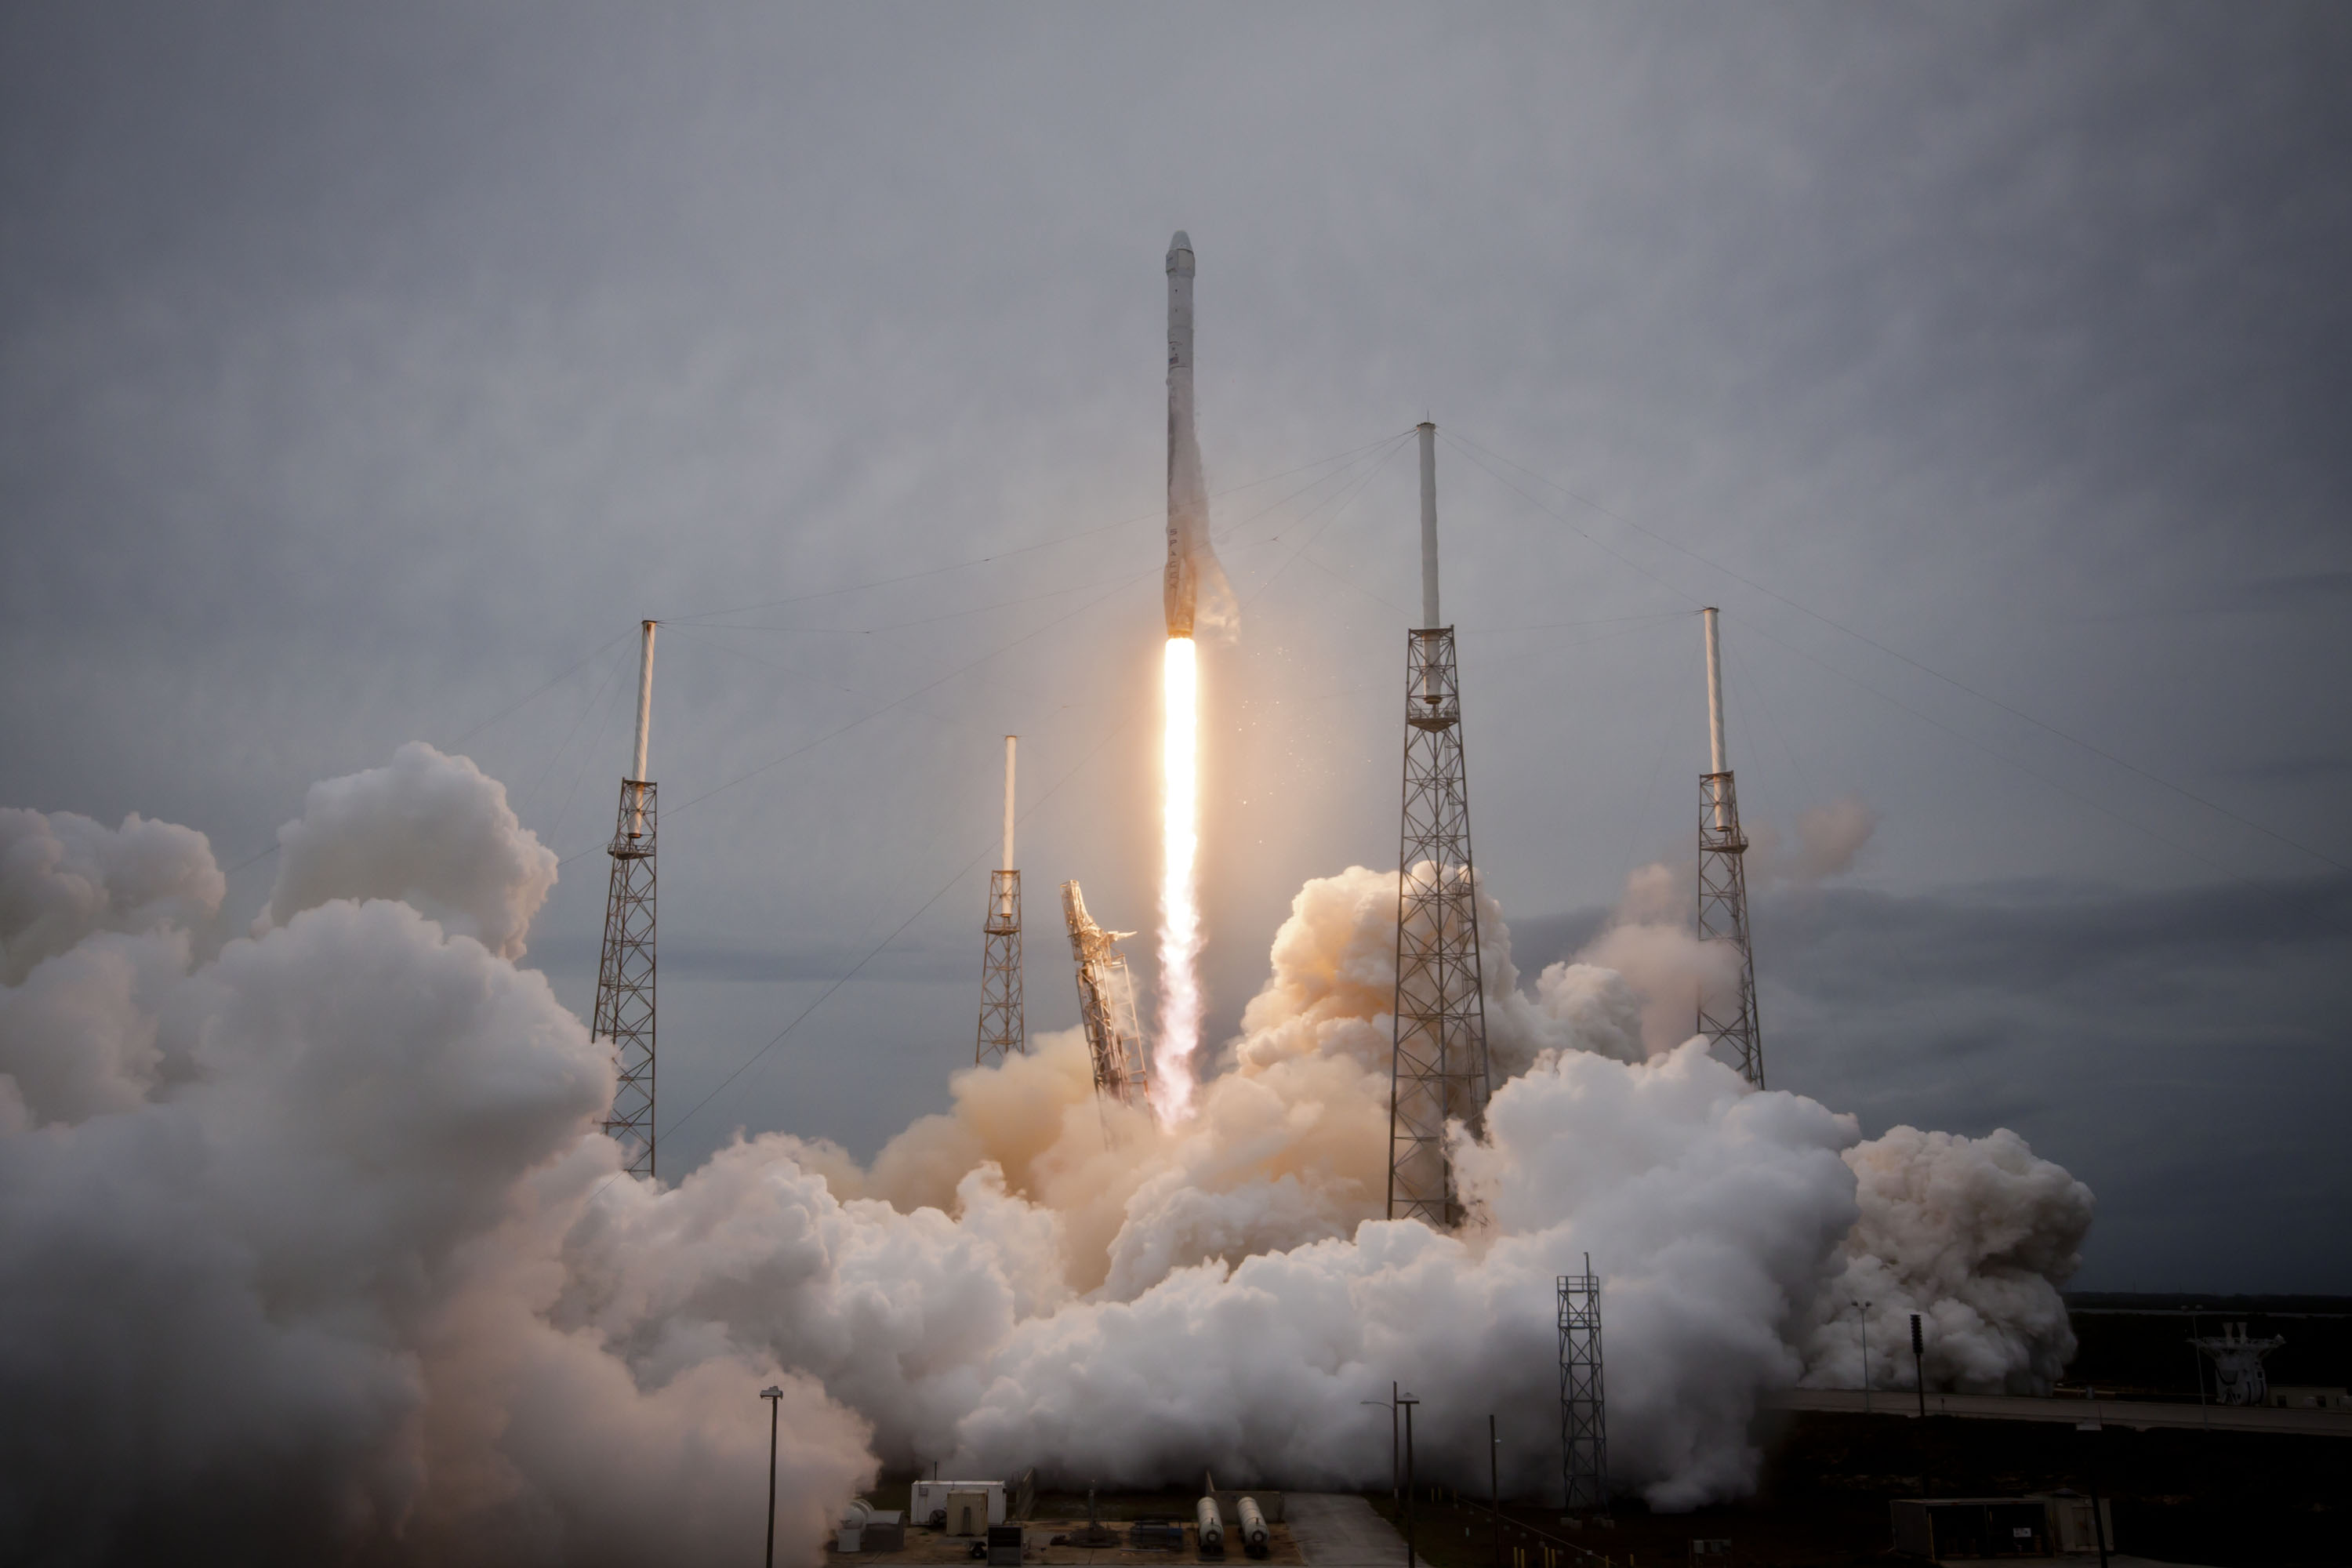 SpaceX Reusable Rocket Test an 'Evolutionary' Breakthrough, Elon Musk Says